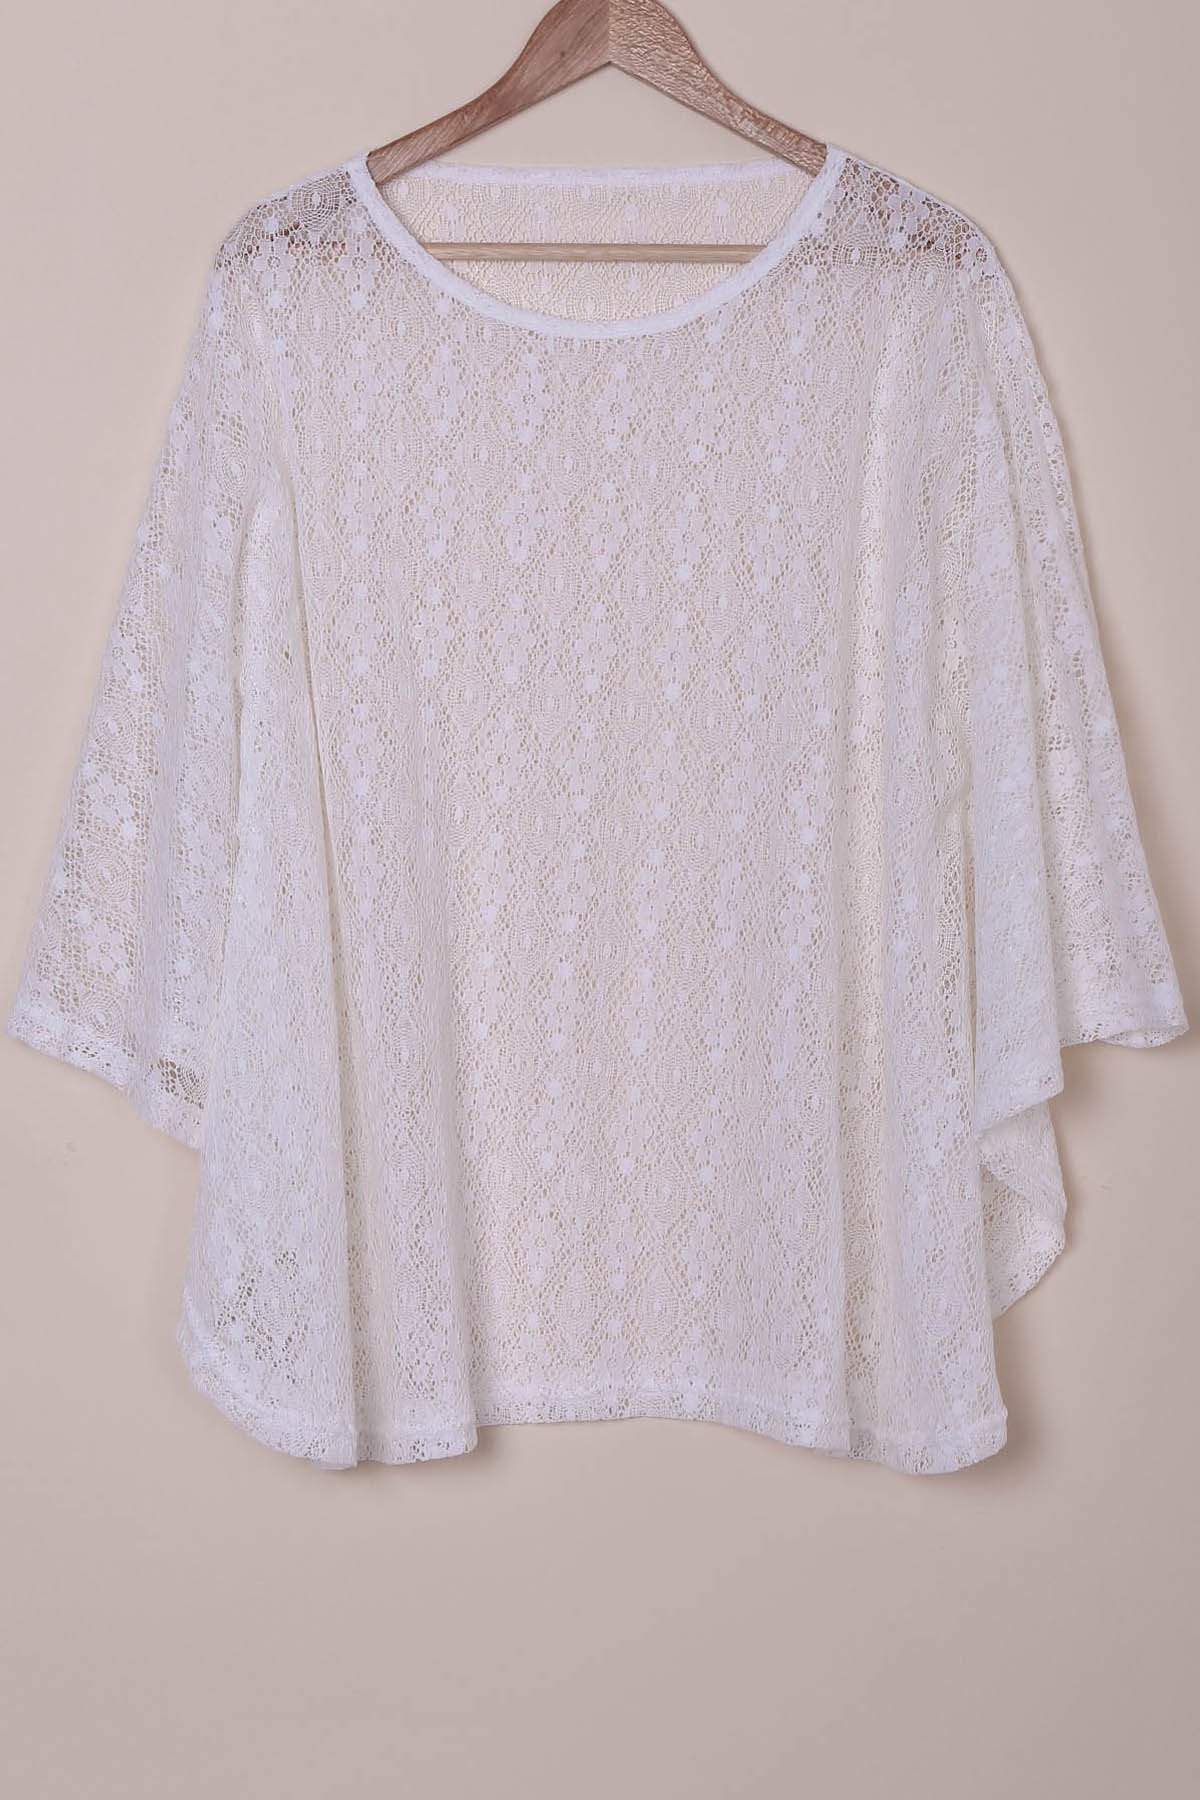 Sexy Scoop Neck Long Sleeve Hollow Out Women's Lace Cover-Up